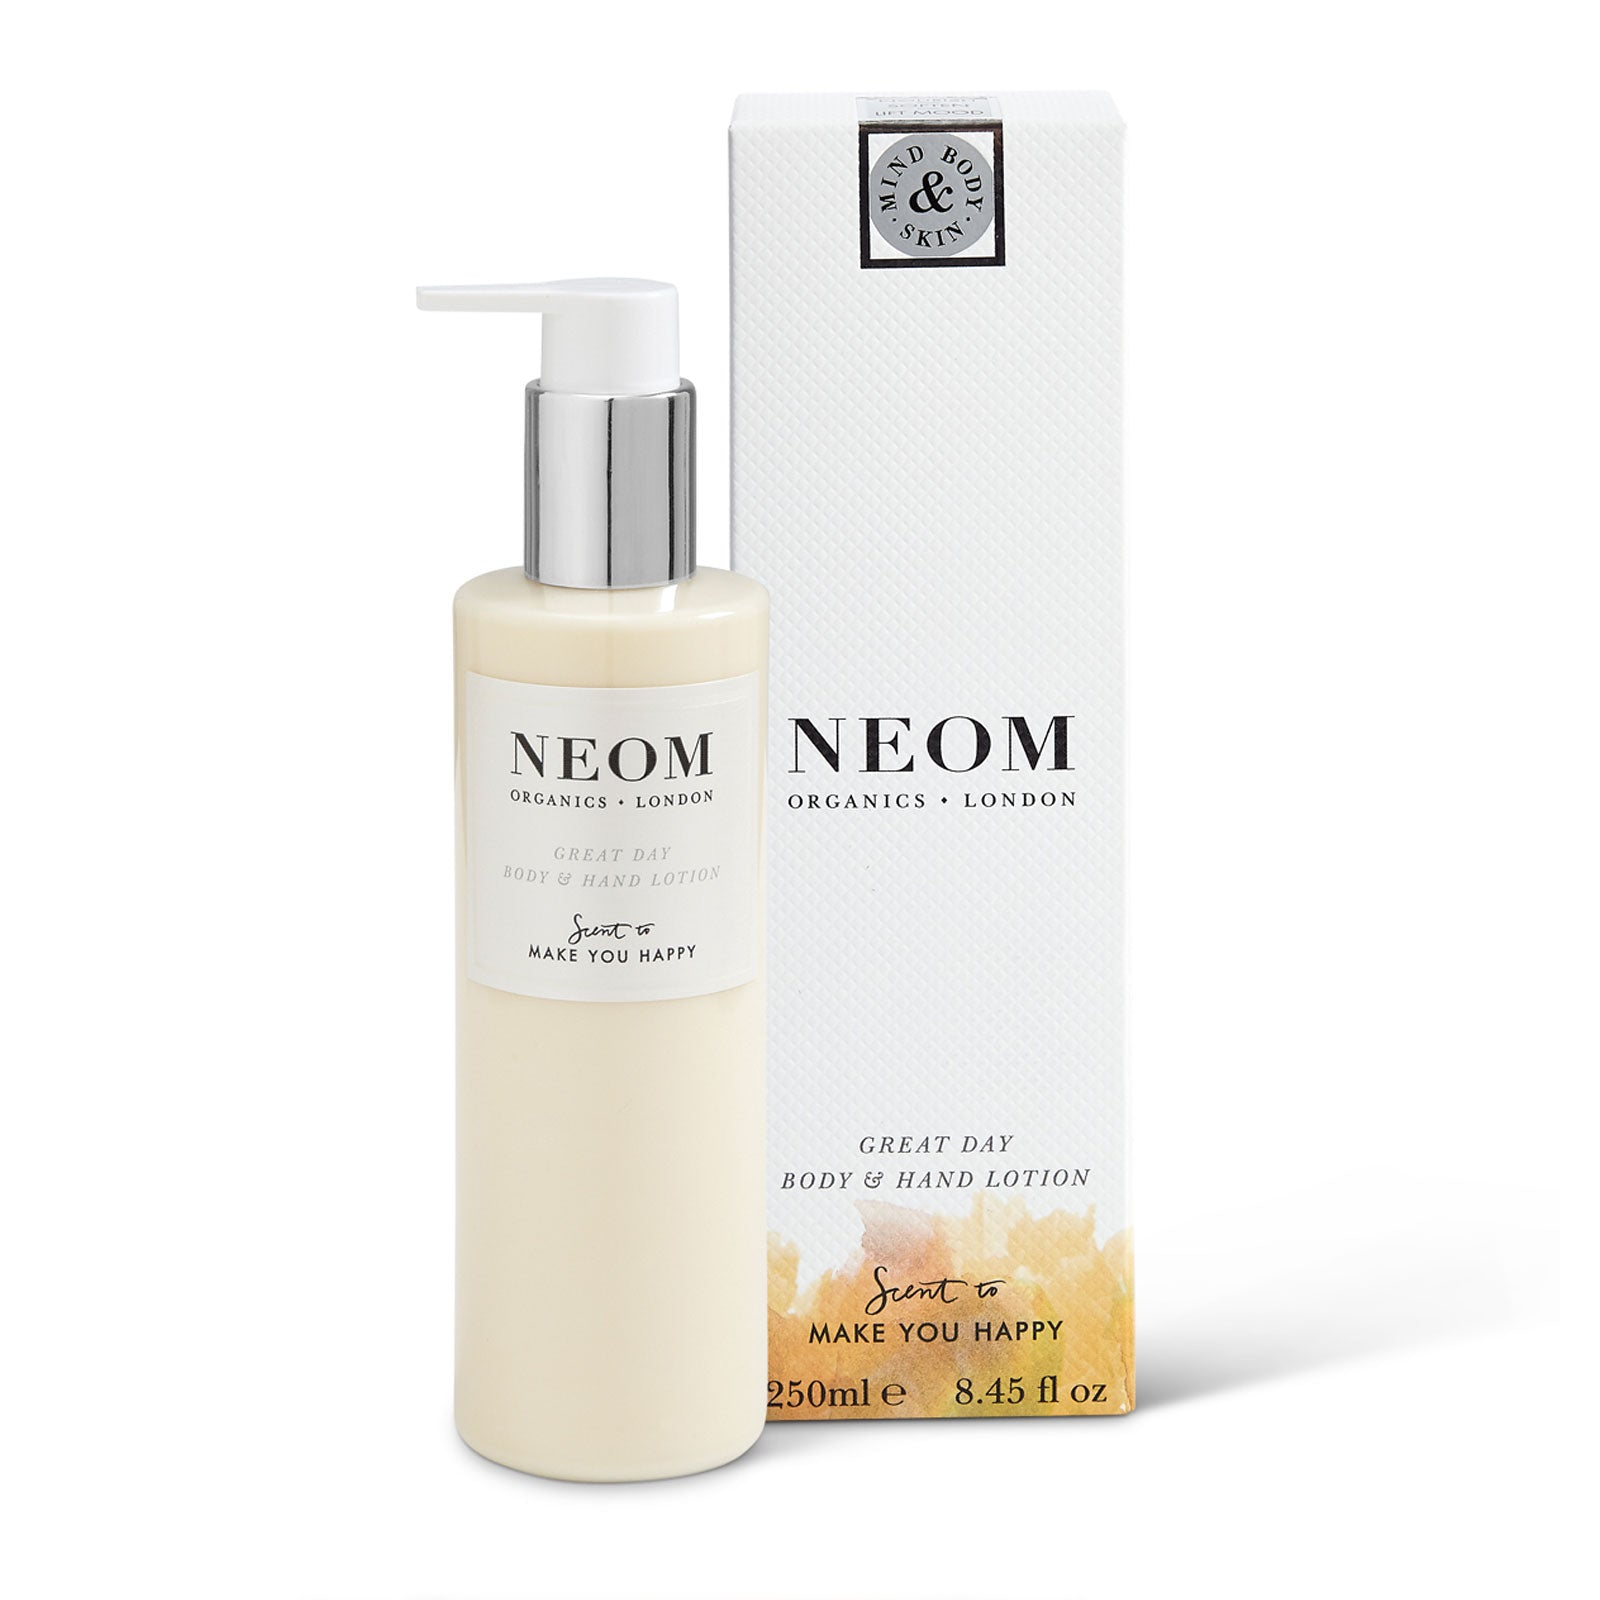 NEOM Organics London Great Day Body & Hand Lotion 250ml